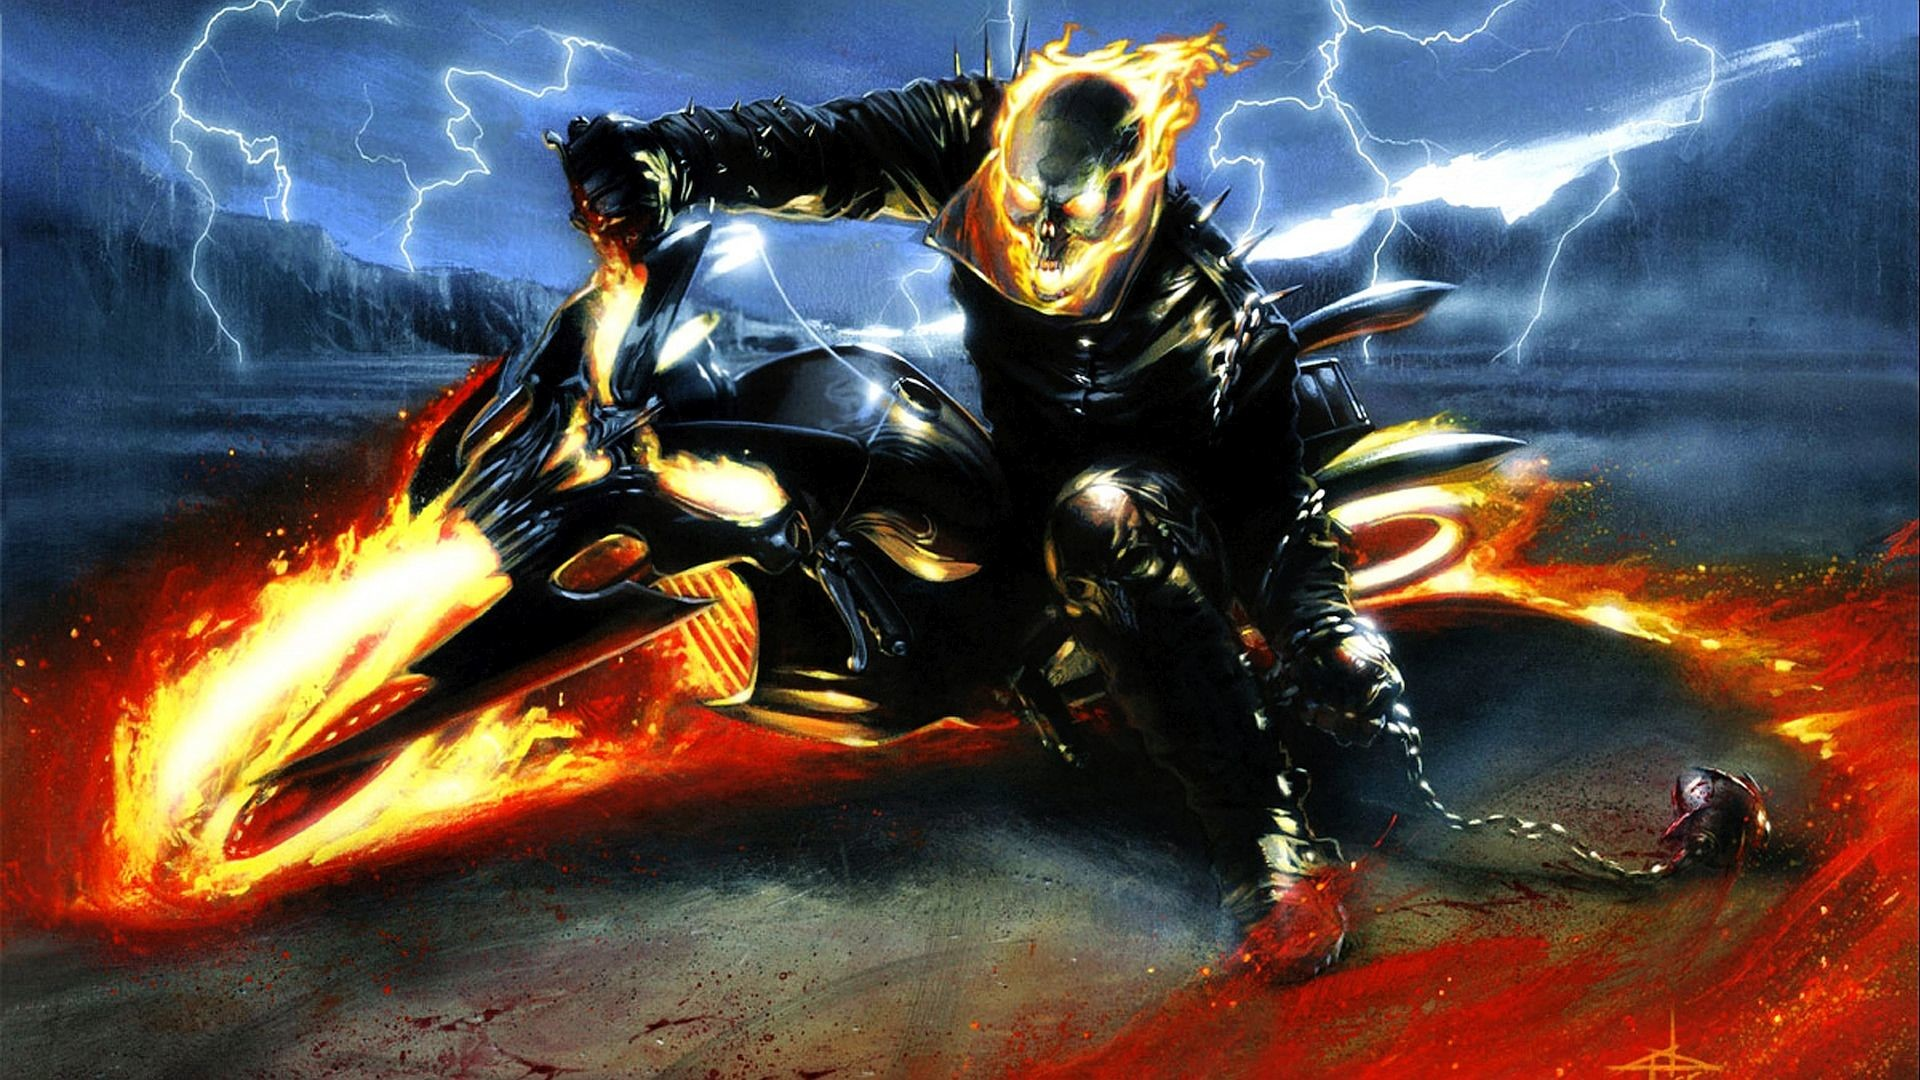 Ghost Rider wallpaper hd free download